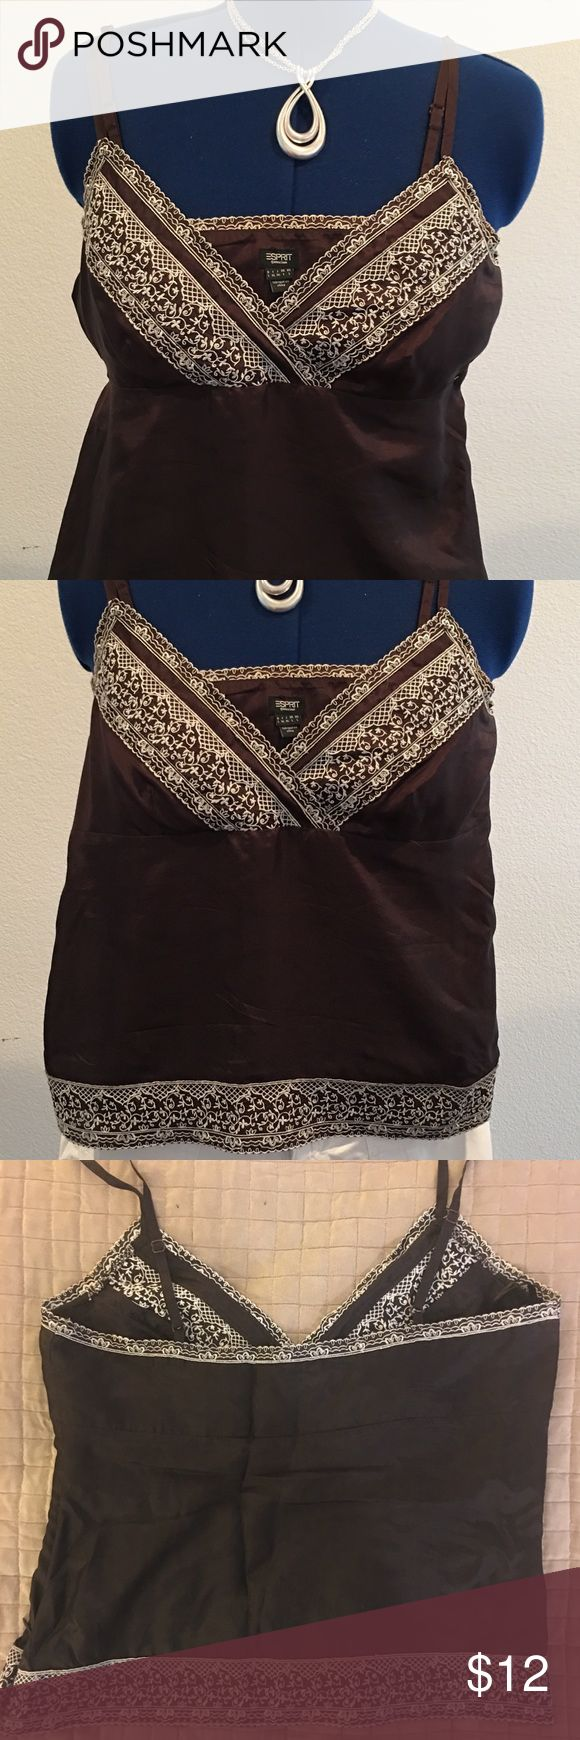 """ESPRIT Brown and White Embroidered Tank Size L/XL Hey Fashionistas! This adorable tank has your name written all over it!  Runs a bit small so I'd say it fits more like a Lg than XL, especially if you're busty.  Adjustable spaghetti straps.  Side zipper for a perfect fit.  100% silk. Hand wash or dry clean. 17"""" from base of strap to hem. 5"""" from base of strap to vneck. 16"""" across under busy laying flat.  Necklace not included.  Check back soon as I'll be posting a TON of stuff over the next…"""